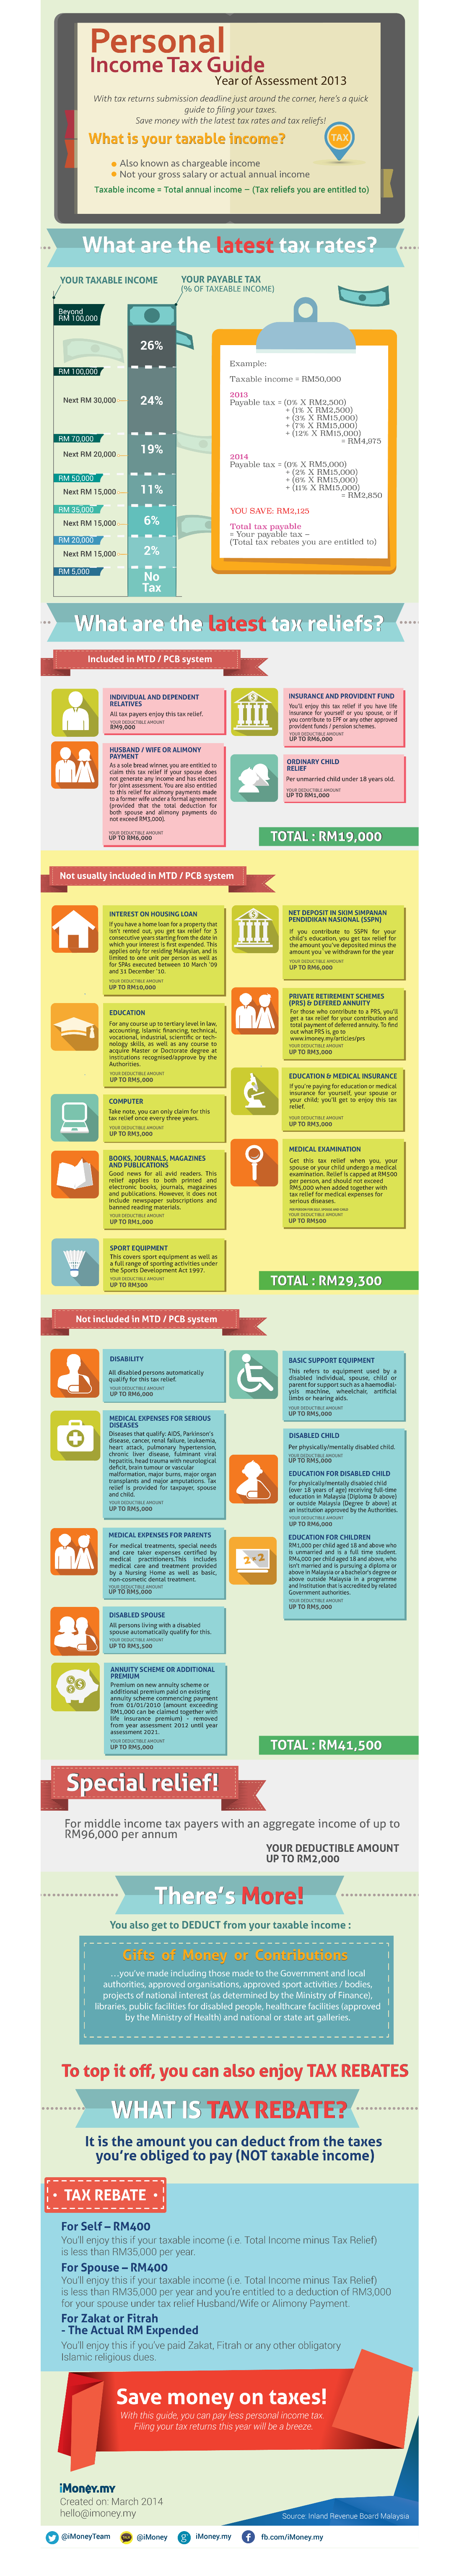 Tax infographic for Malaysians by iMoney.my